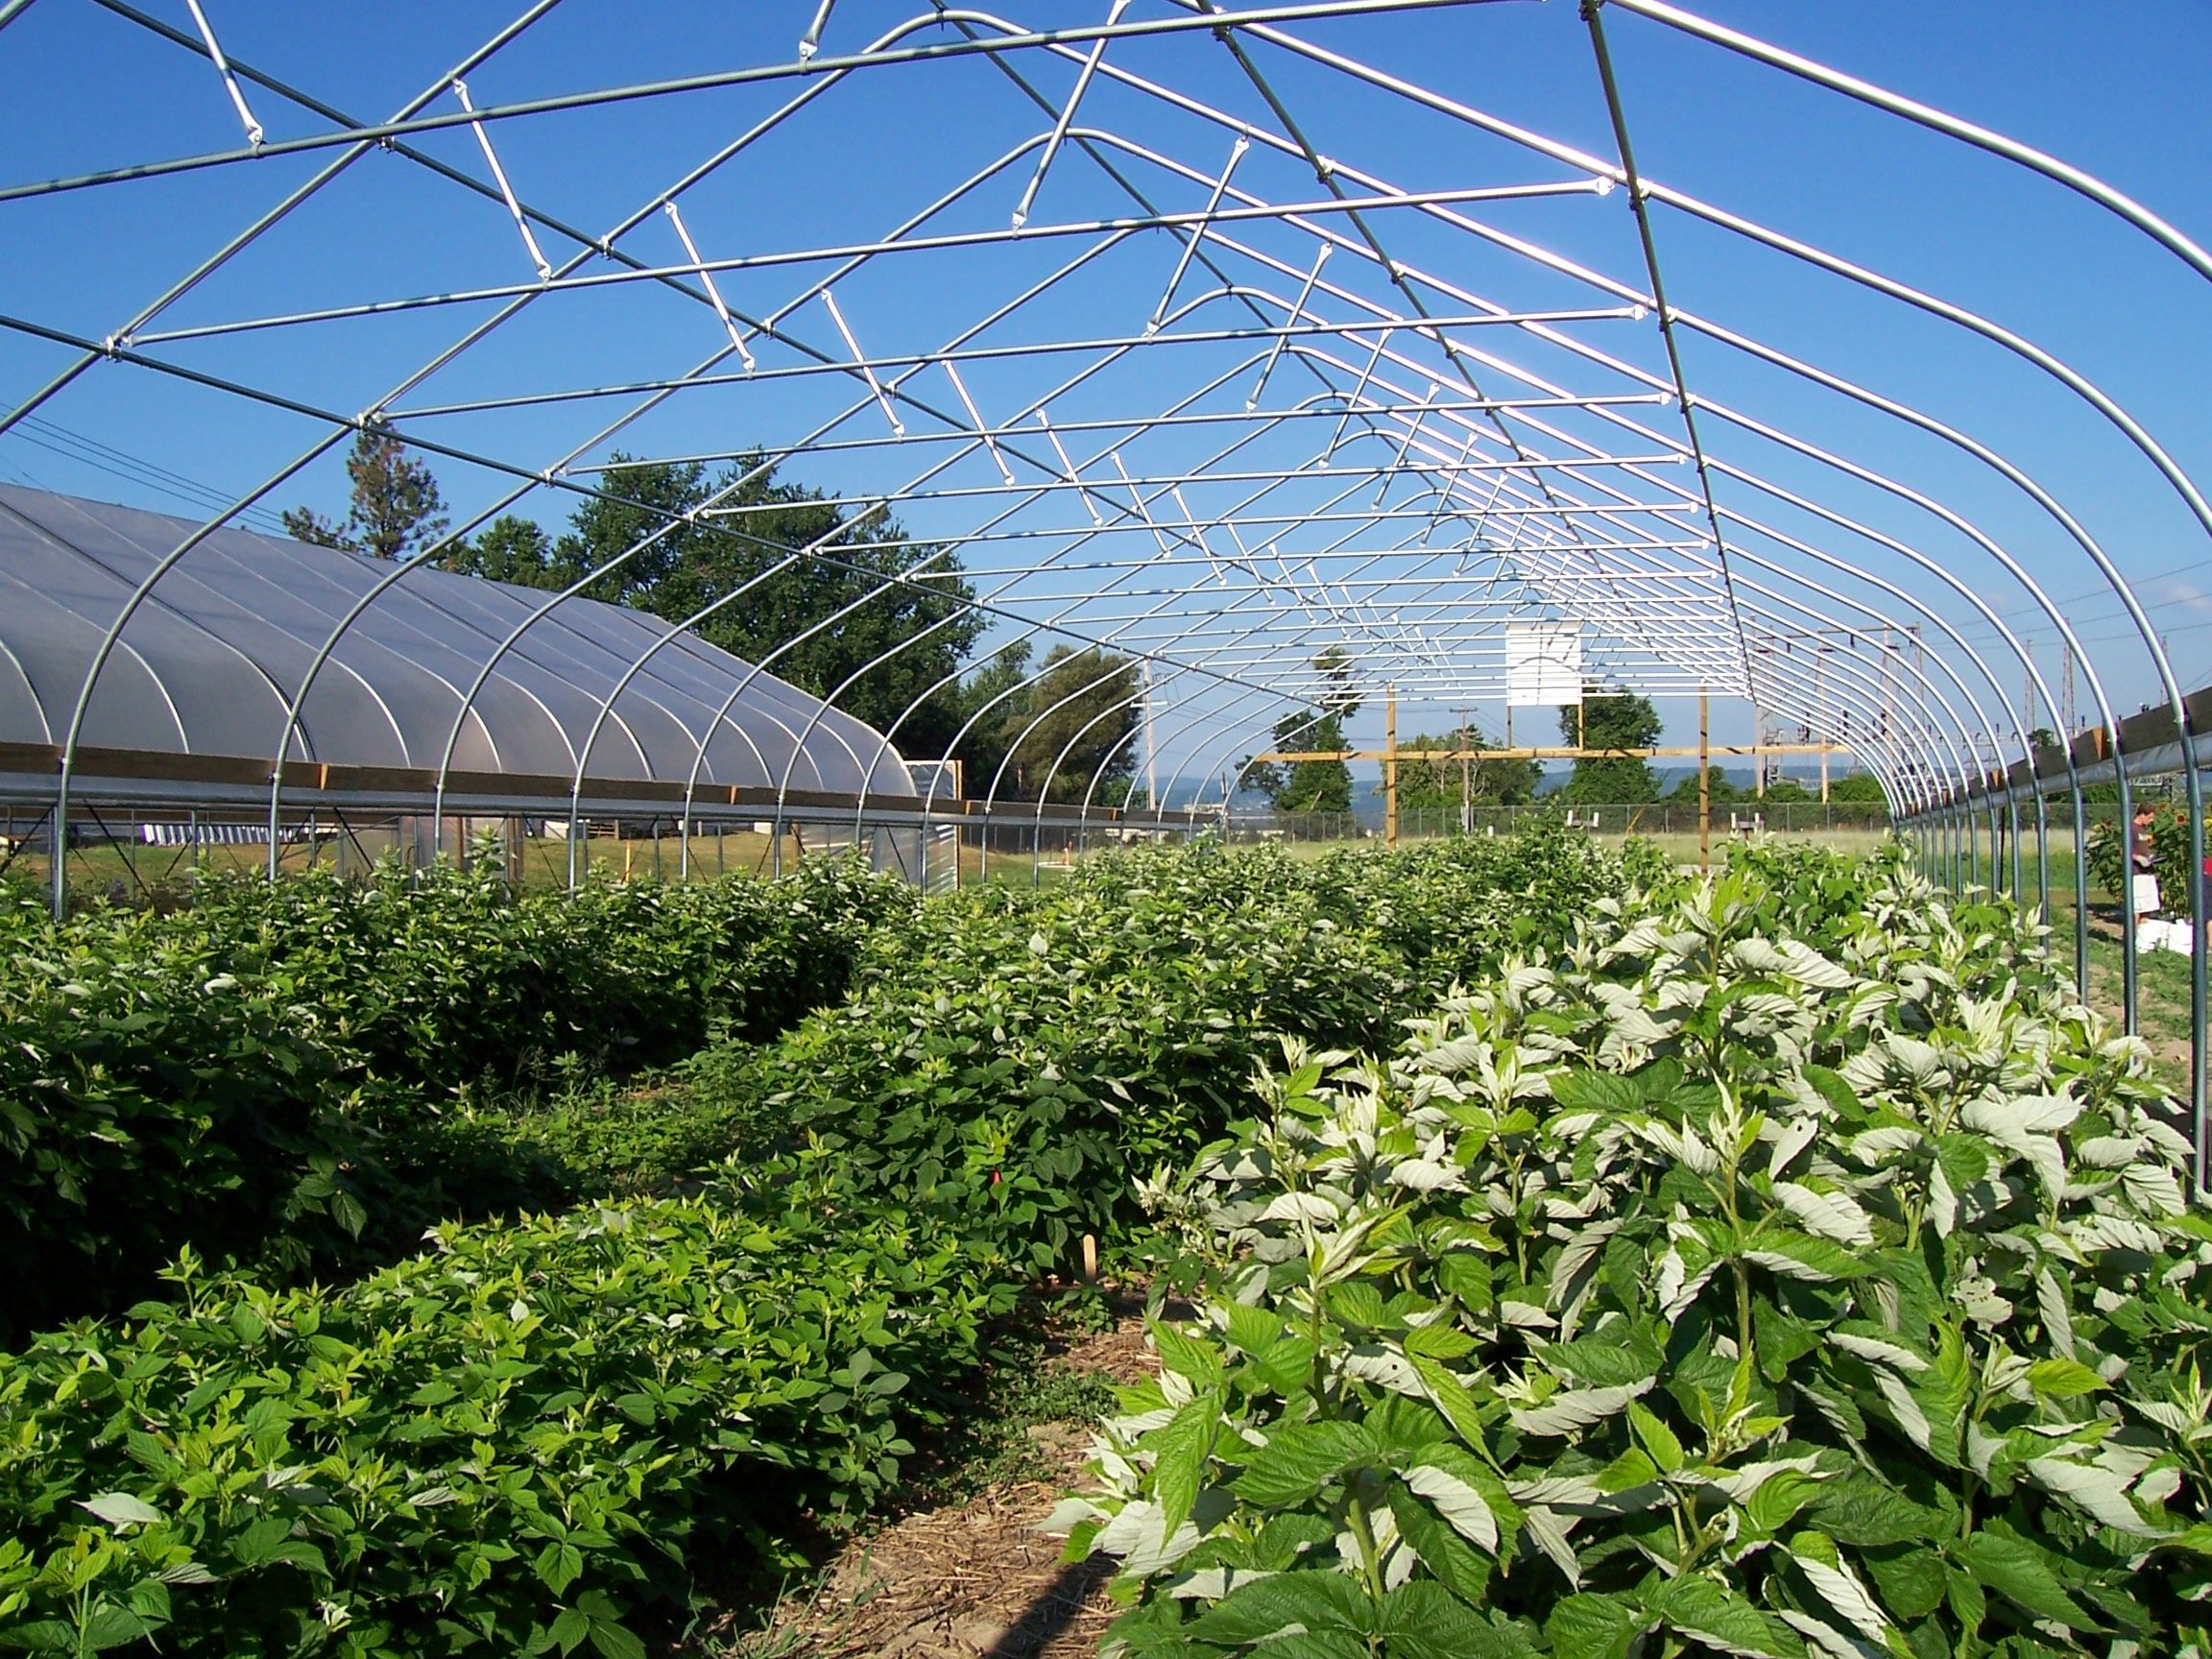 cornell university in ithaca ny uses a rimol greenhouse systems high tunnel for growing fruits - Rimol Greenhouse Of Photos